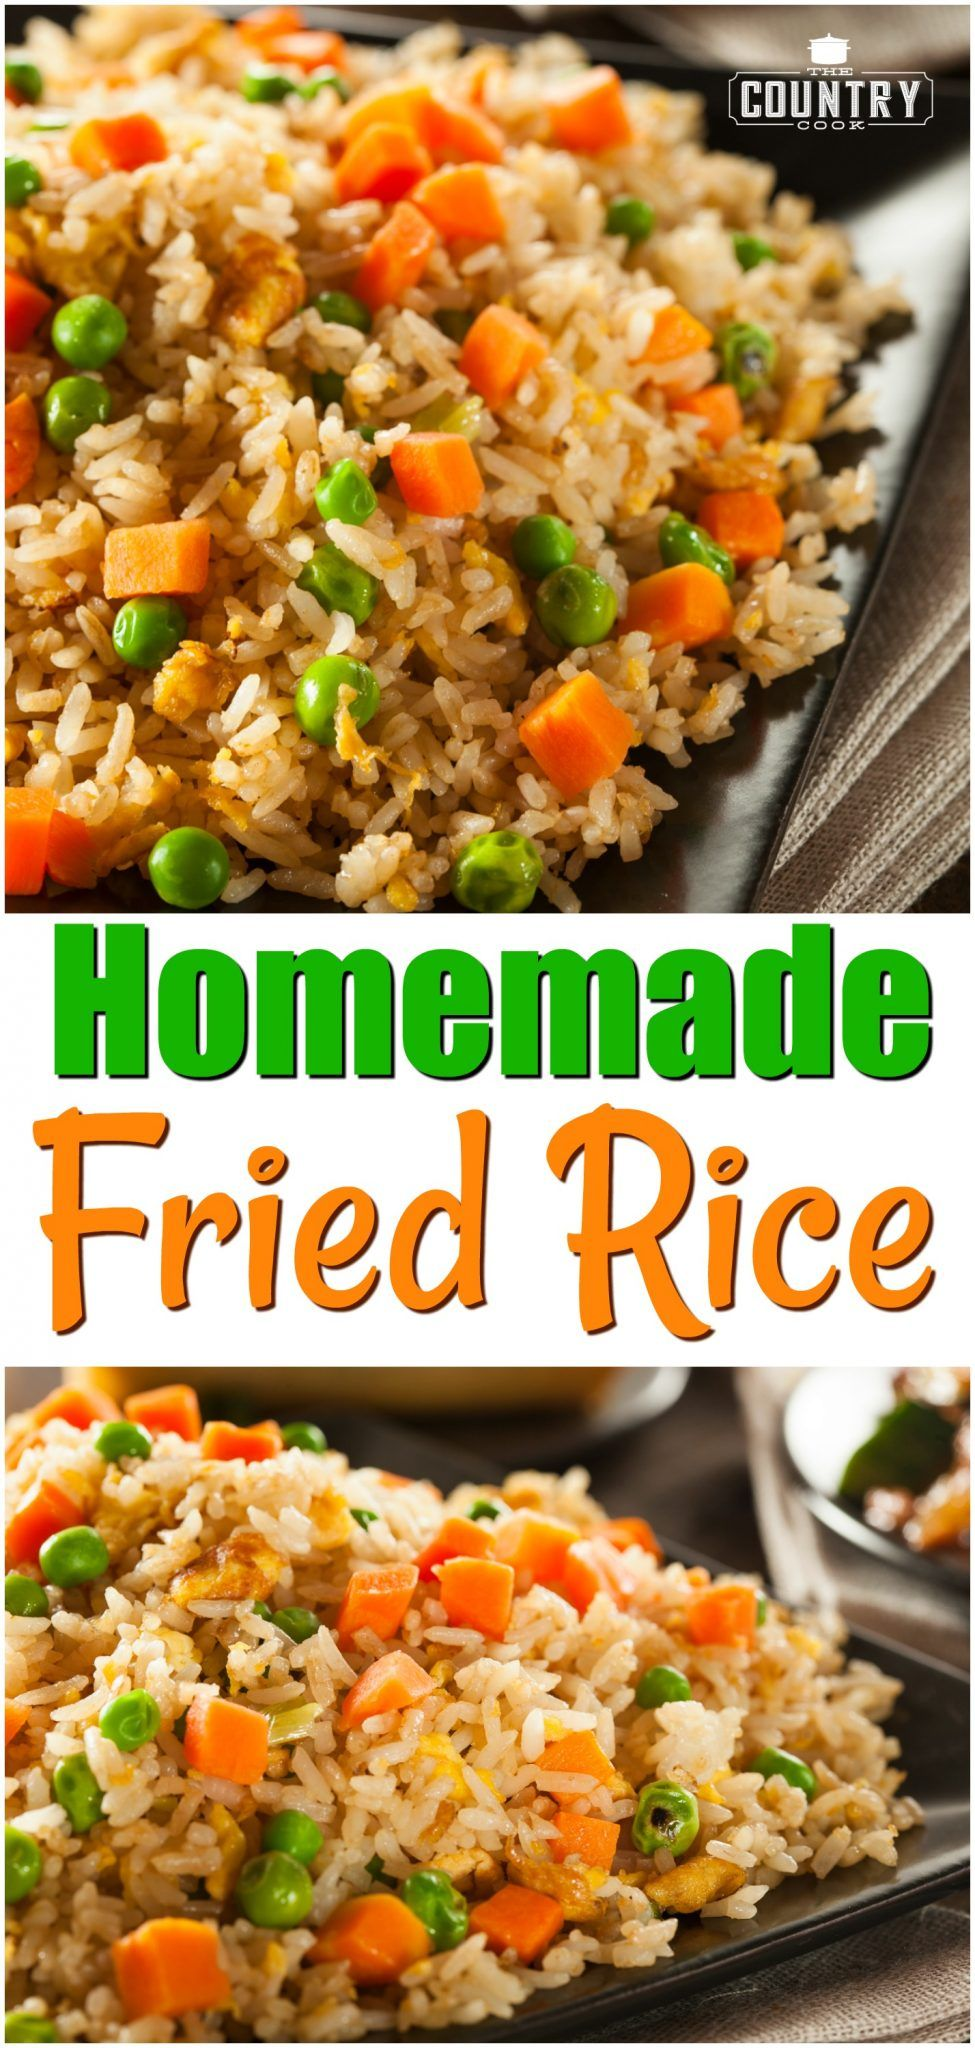 Homemade fried rice recipe from the country cook rice friedrice homemade fried rice recipe from the country cook rice friedrice easy homemade ccuart Image collections